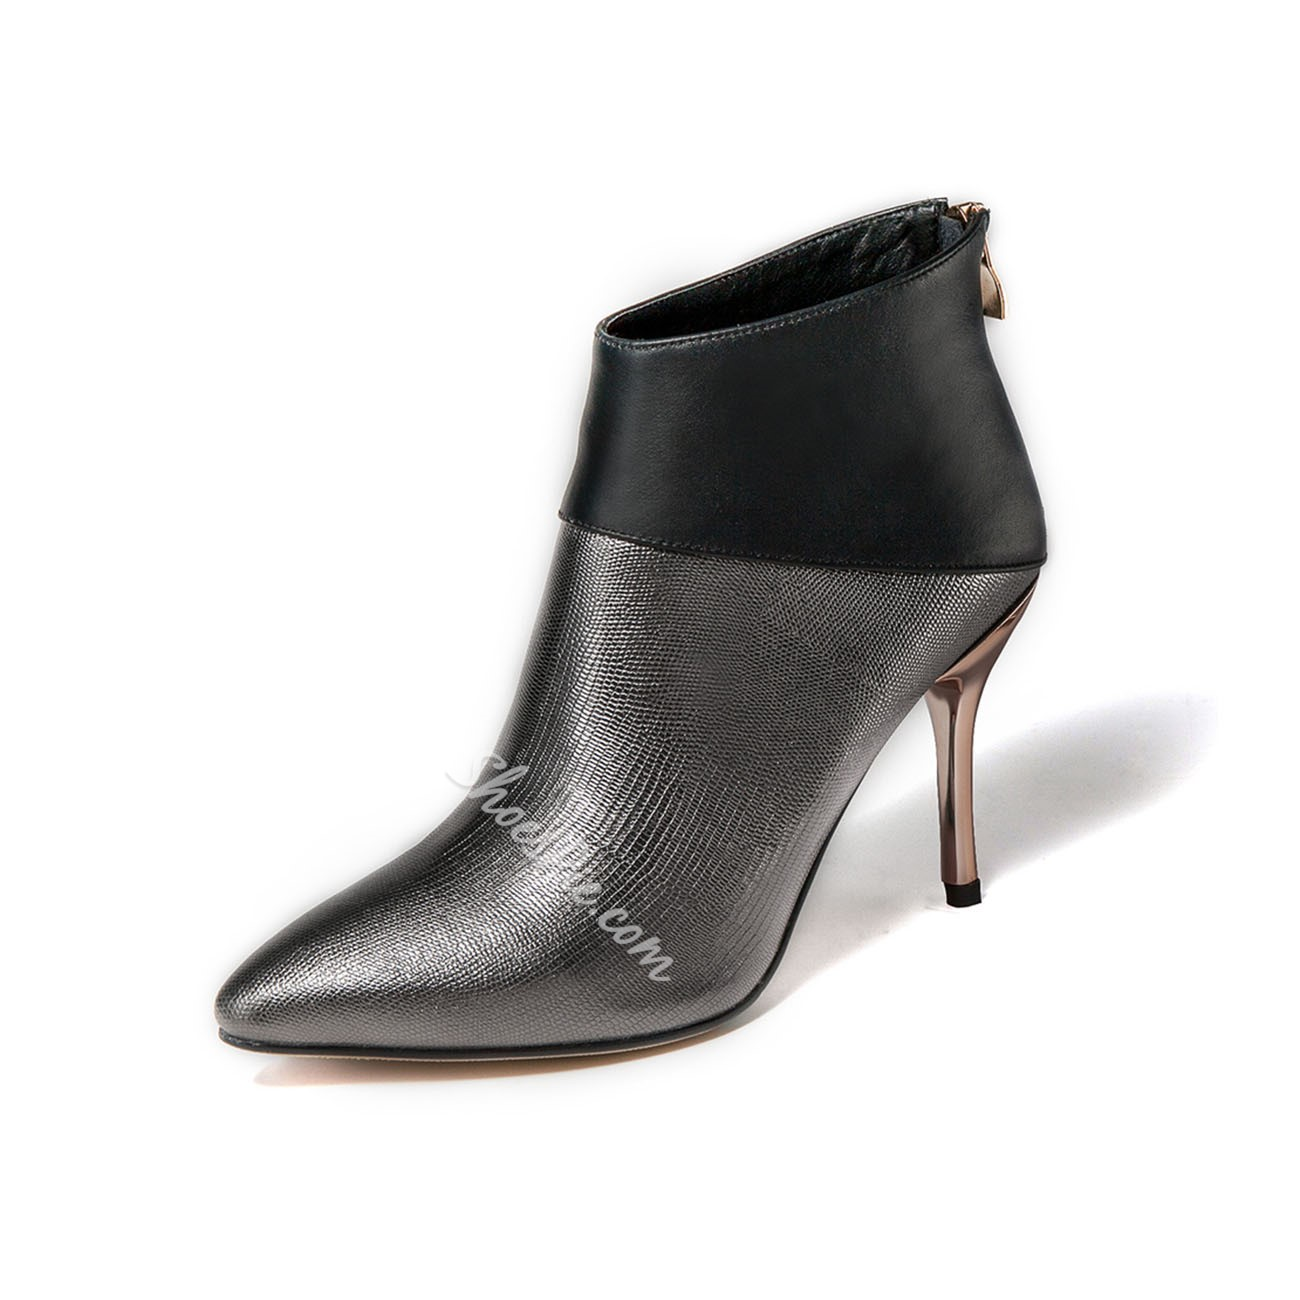 Shoespie Zipper Pointed-toe Ankle Boots